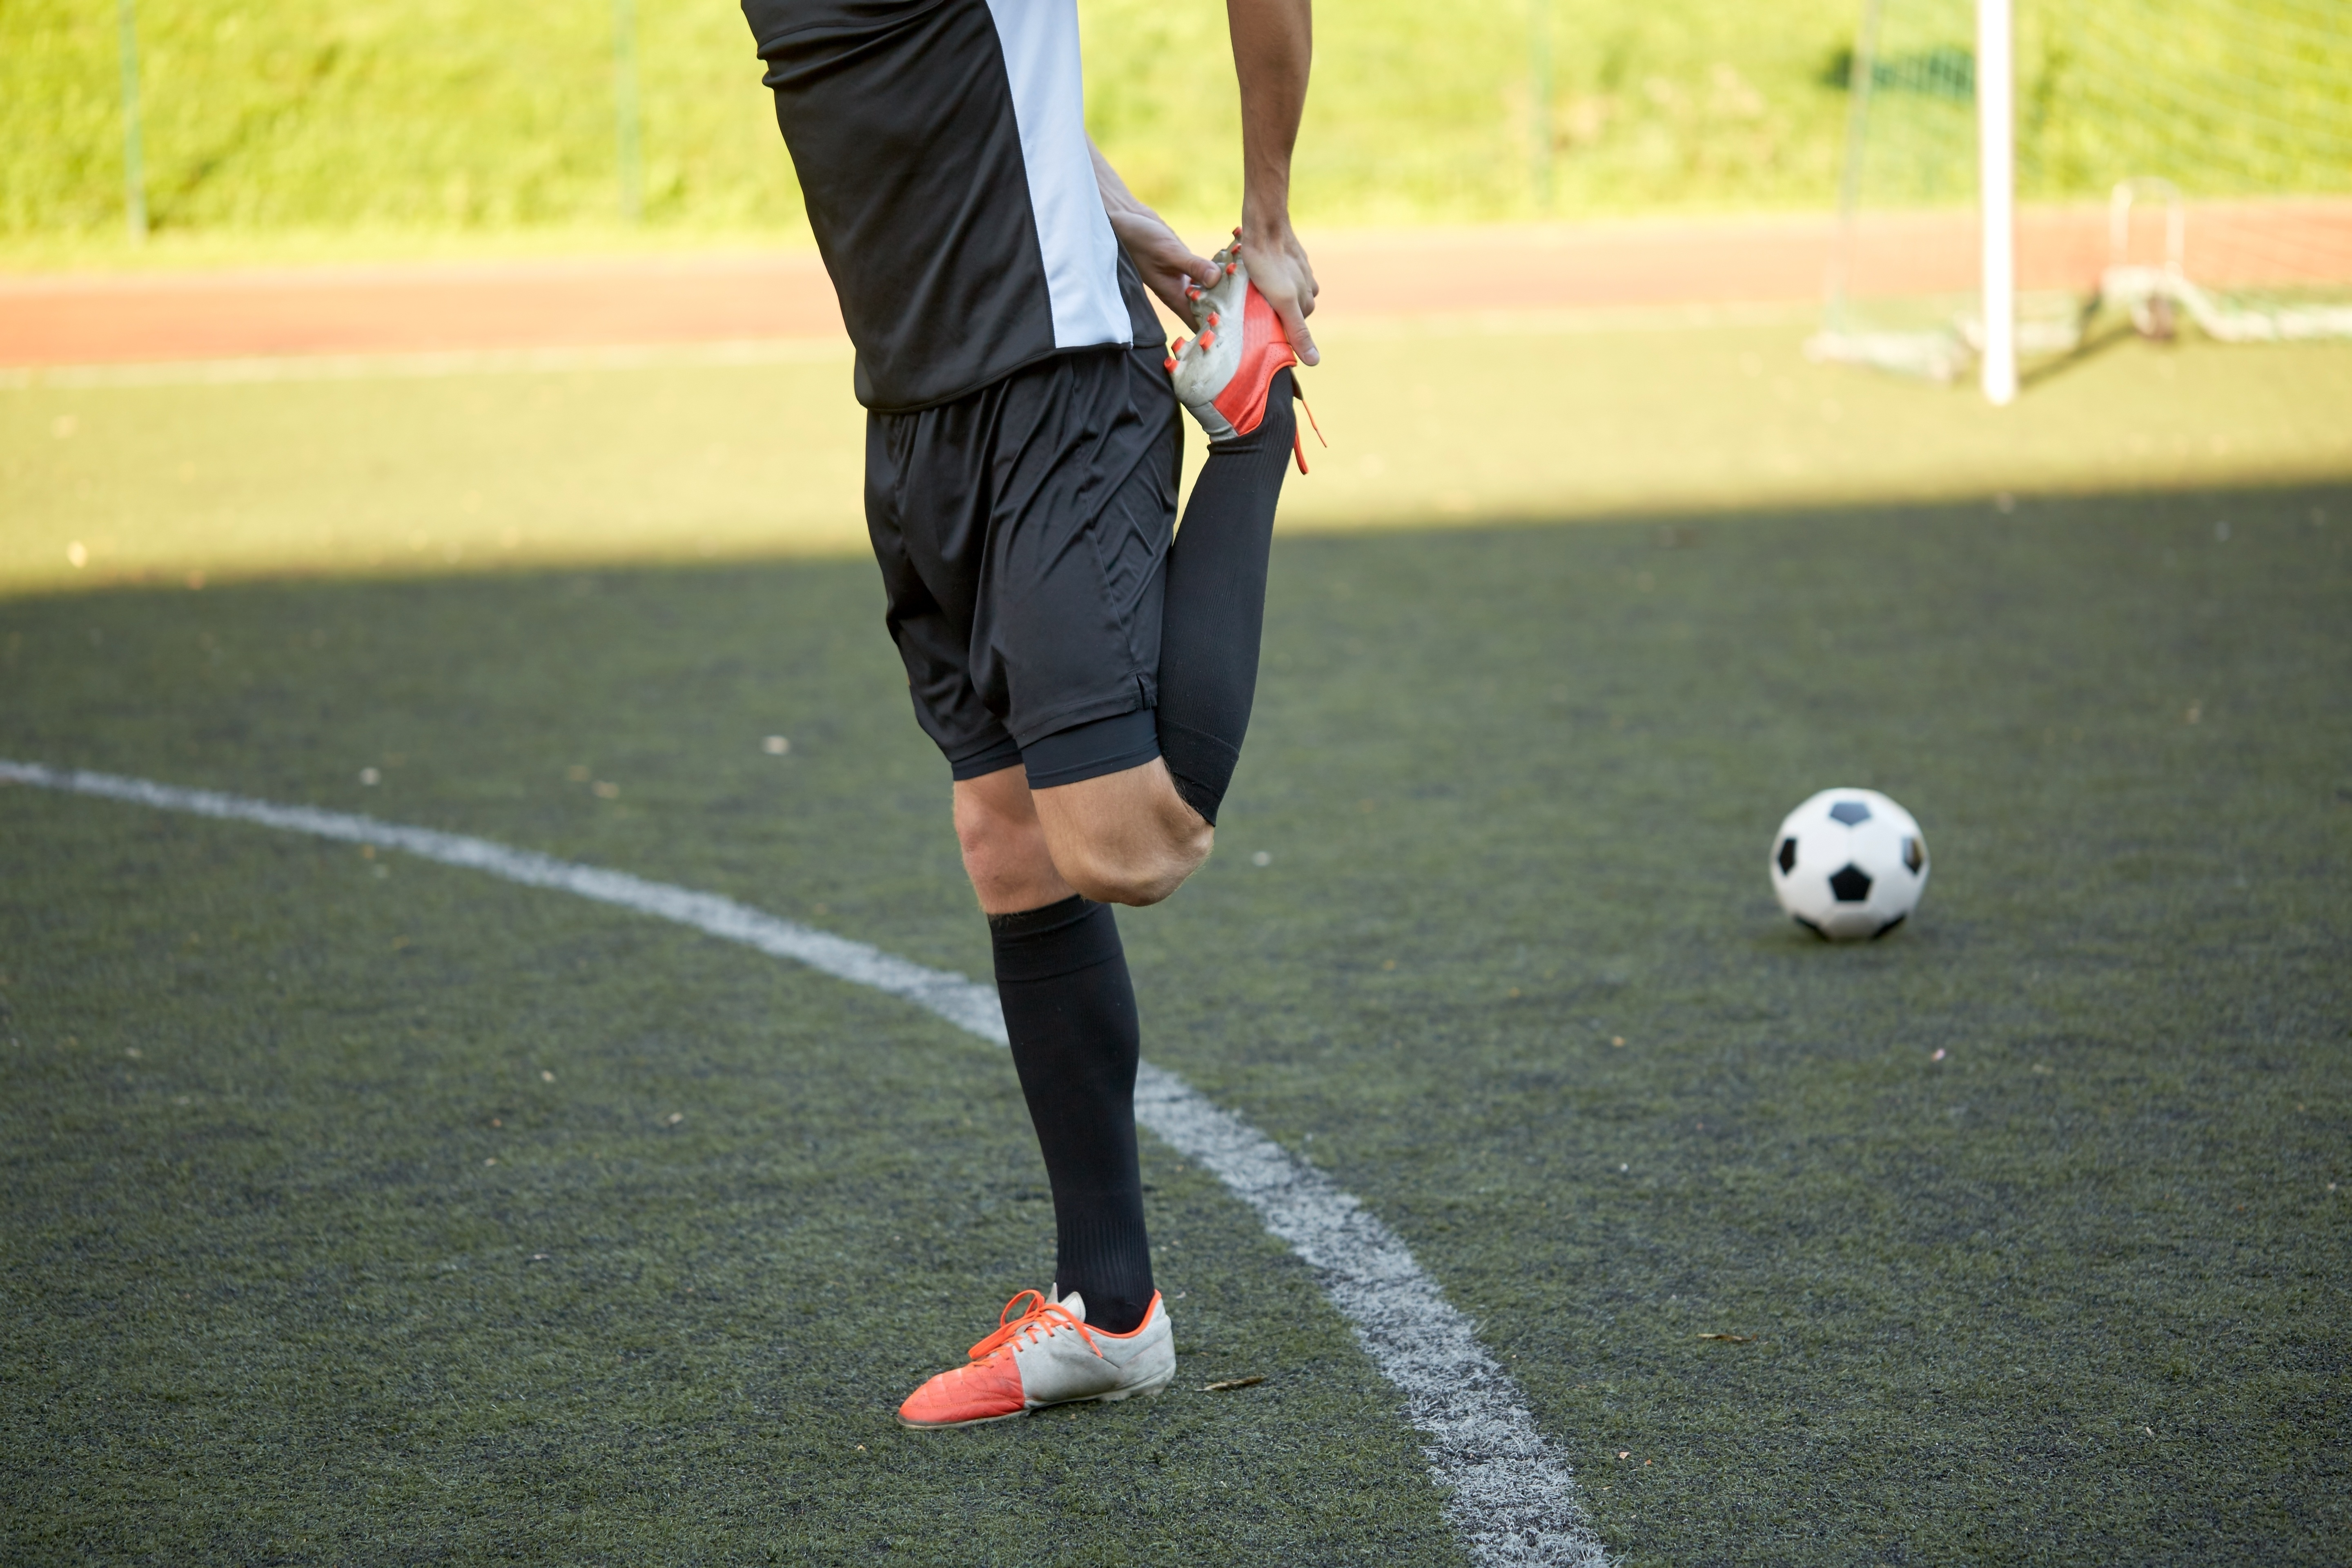 Dyanmic Soccer Warm-up to Enhance Athletic Performance